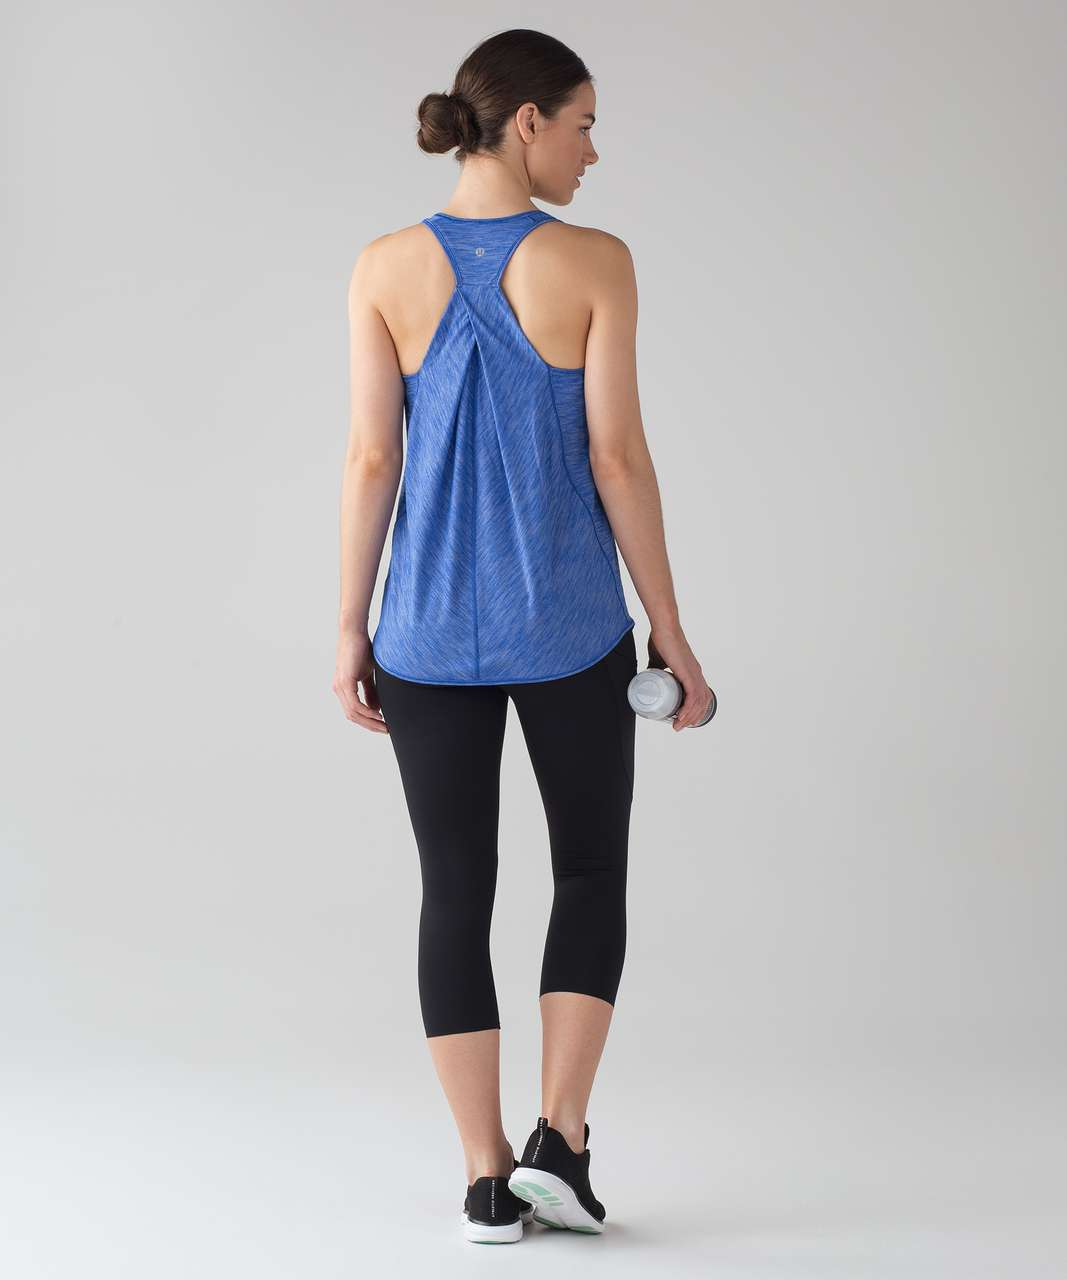 Lululemon Essential Tank - Heathered Jet Stream